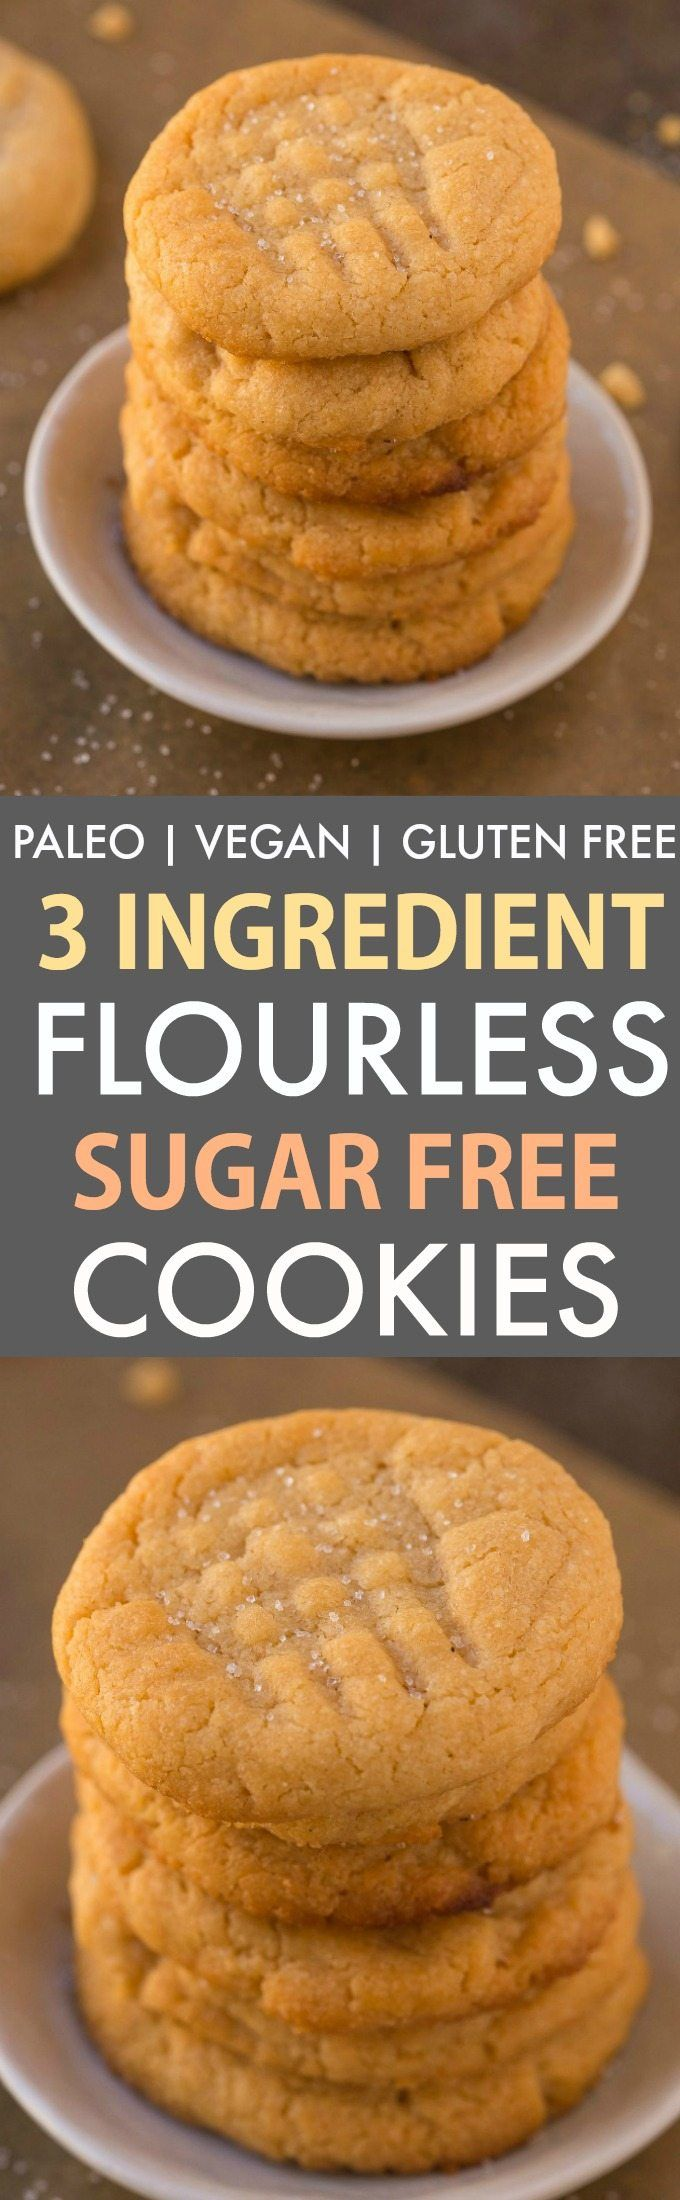 3 Ingredient Sugar Free Flourless Cookies (Paleo, Vegan, Gluten Free)- The three-ingredient flourless peanut butter cookies get a healthy makeover!